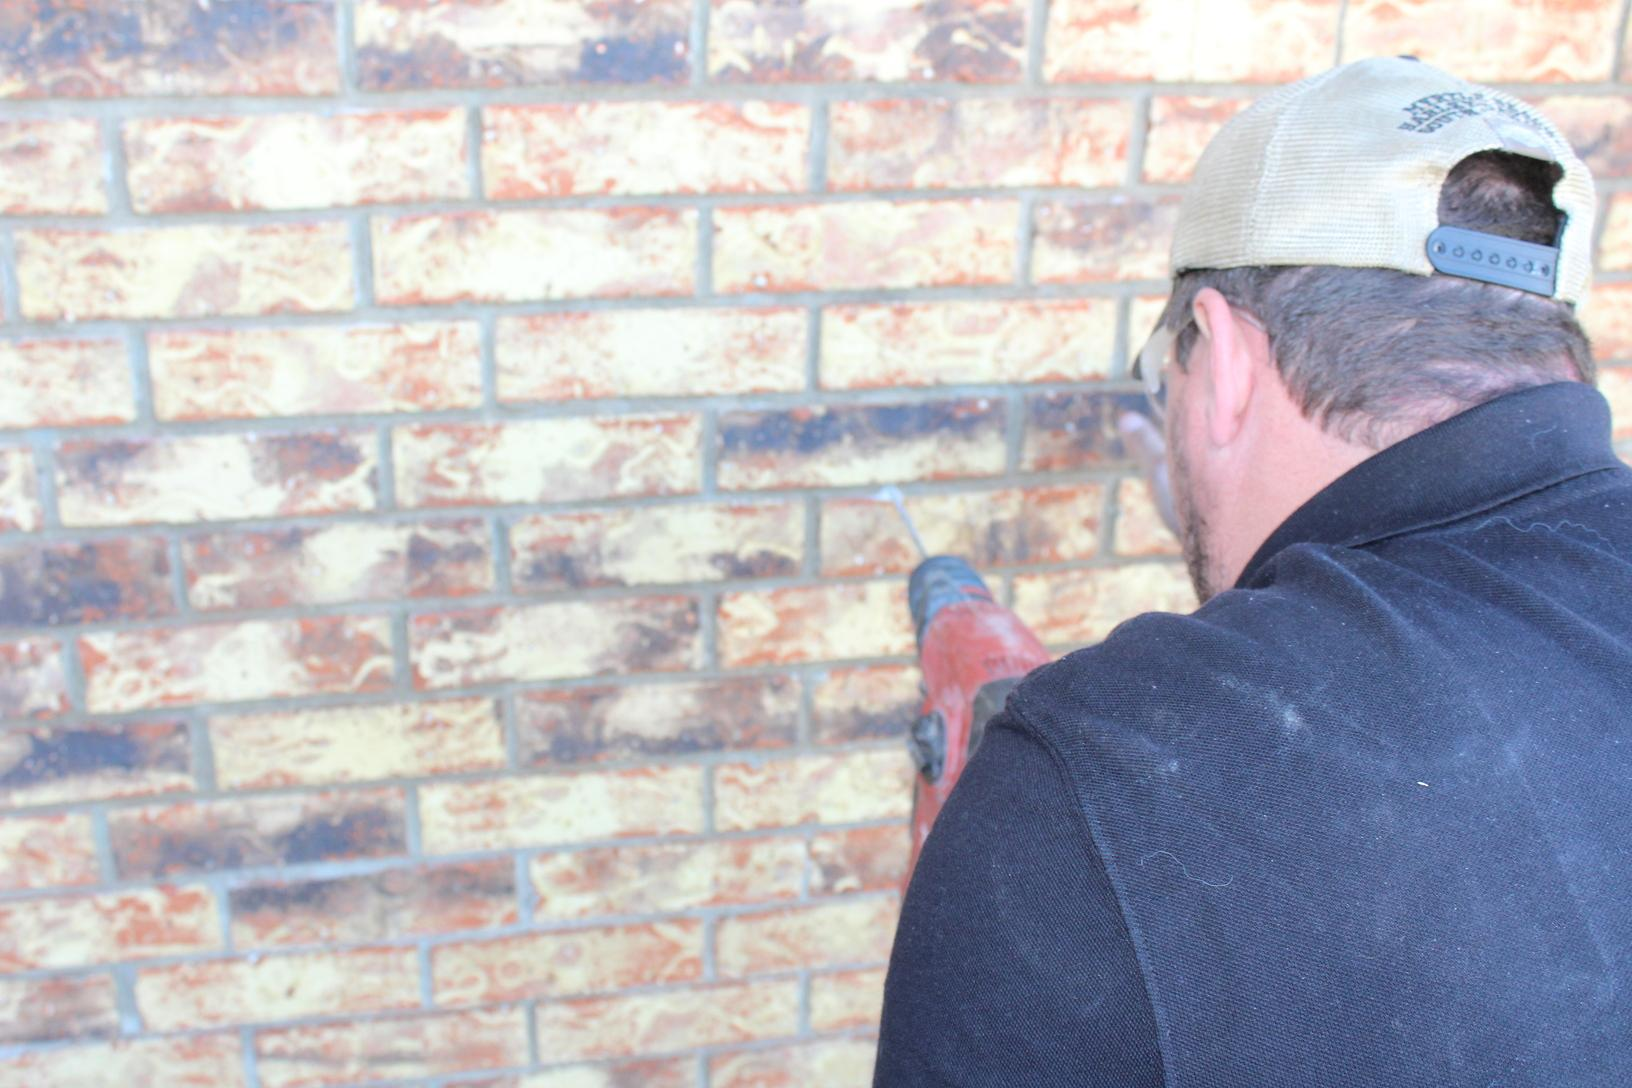 To grip two bricks at a time, the anchors are cored through the mortar lines.